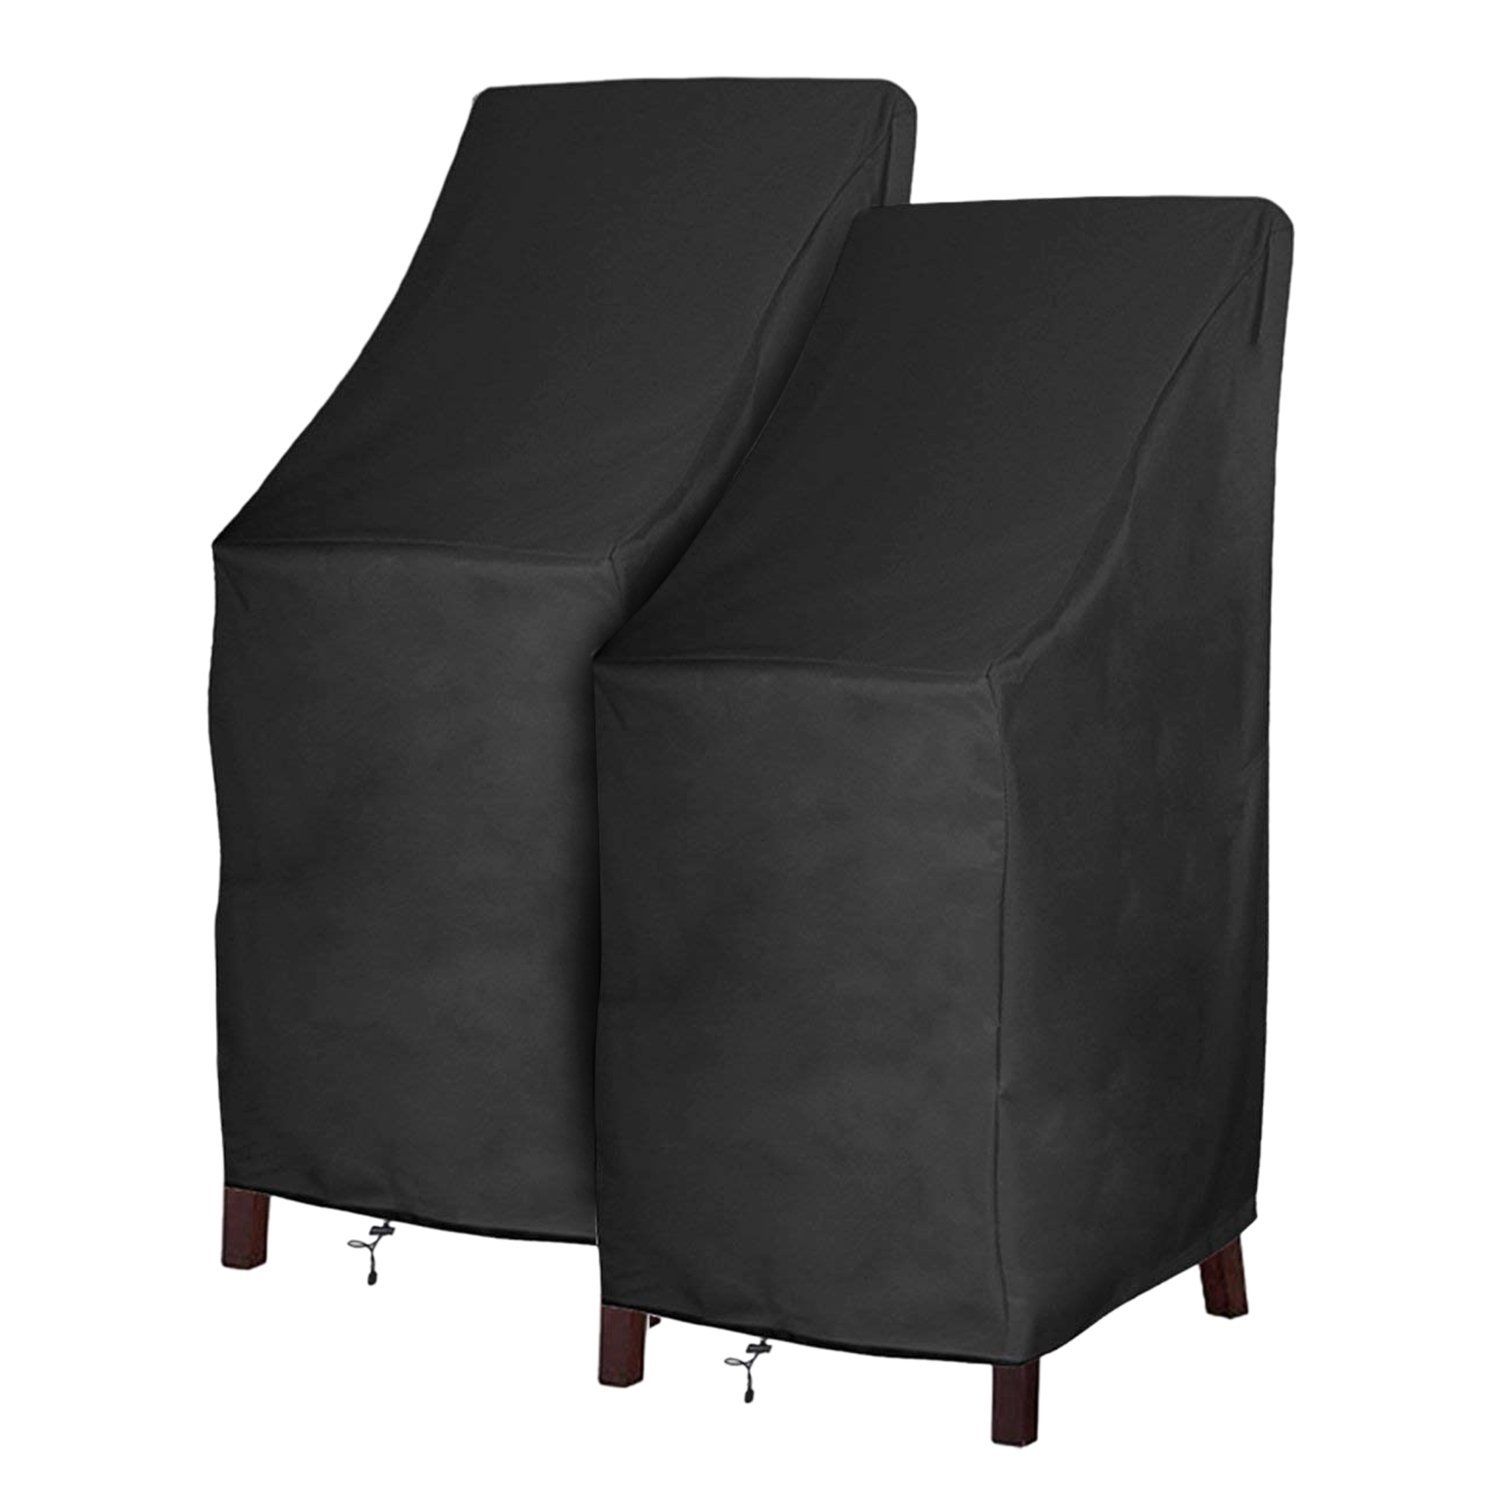 Patio Chair Covers Waterproof Durable Outdoor Bar Stool Cover Premium Stairs Cover Stackable Chairs Cover Black Thick Oxford Cloth L27.5 x D27.5 x H49.2 inch, 2 Pack